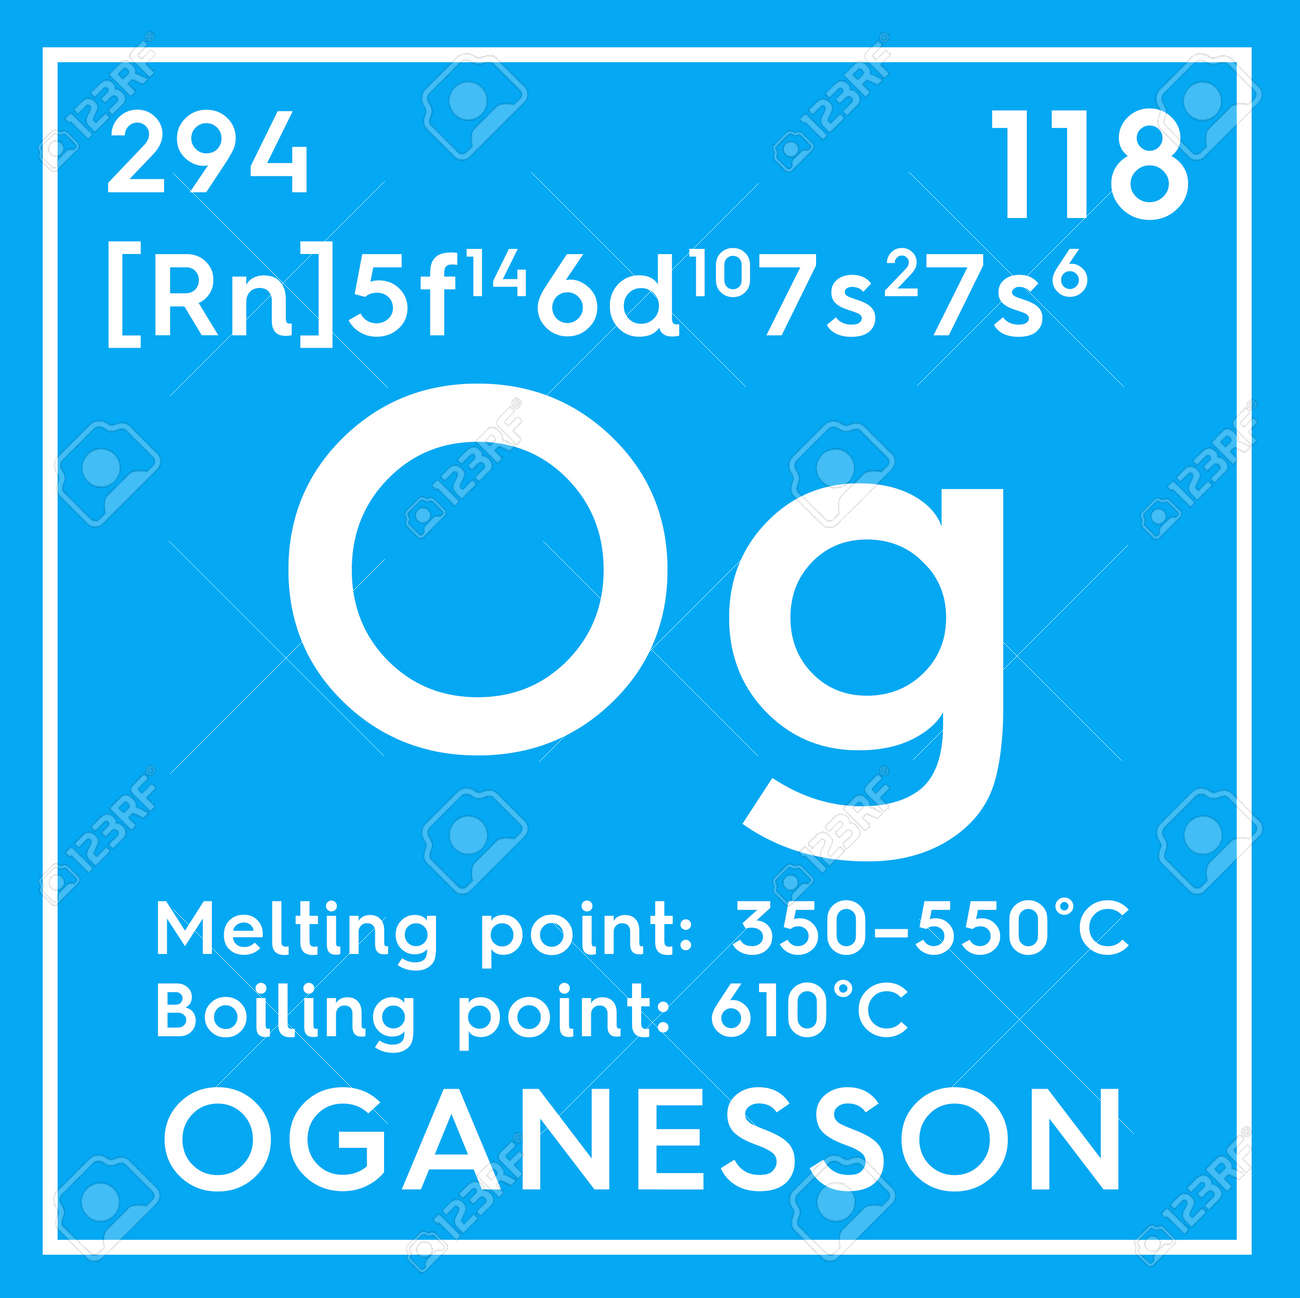 Oganesson noble gases chemical element of mendeleevs periodic noble gases chemical element of mendeleevs periodic table oganesson in square cube urtaz Gallery